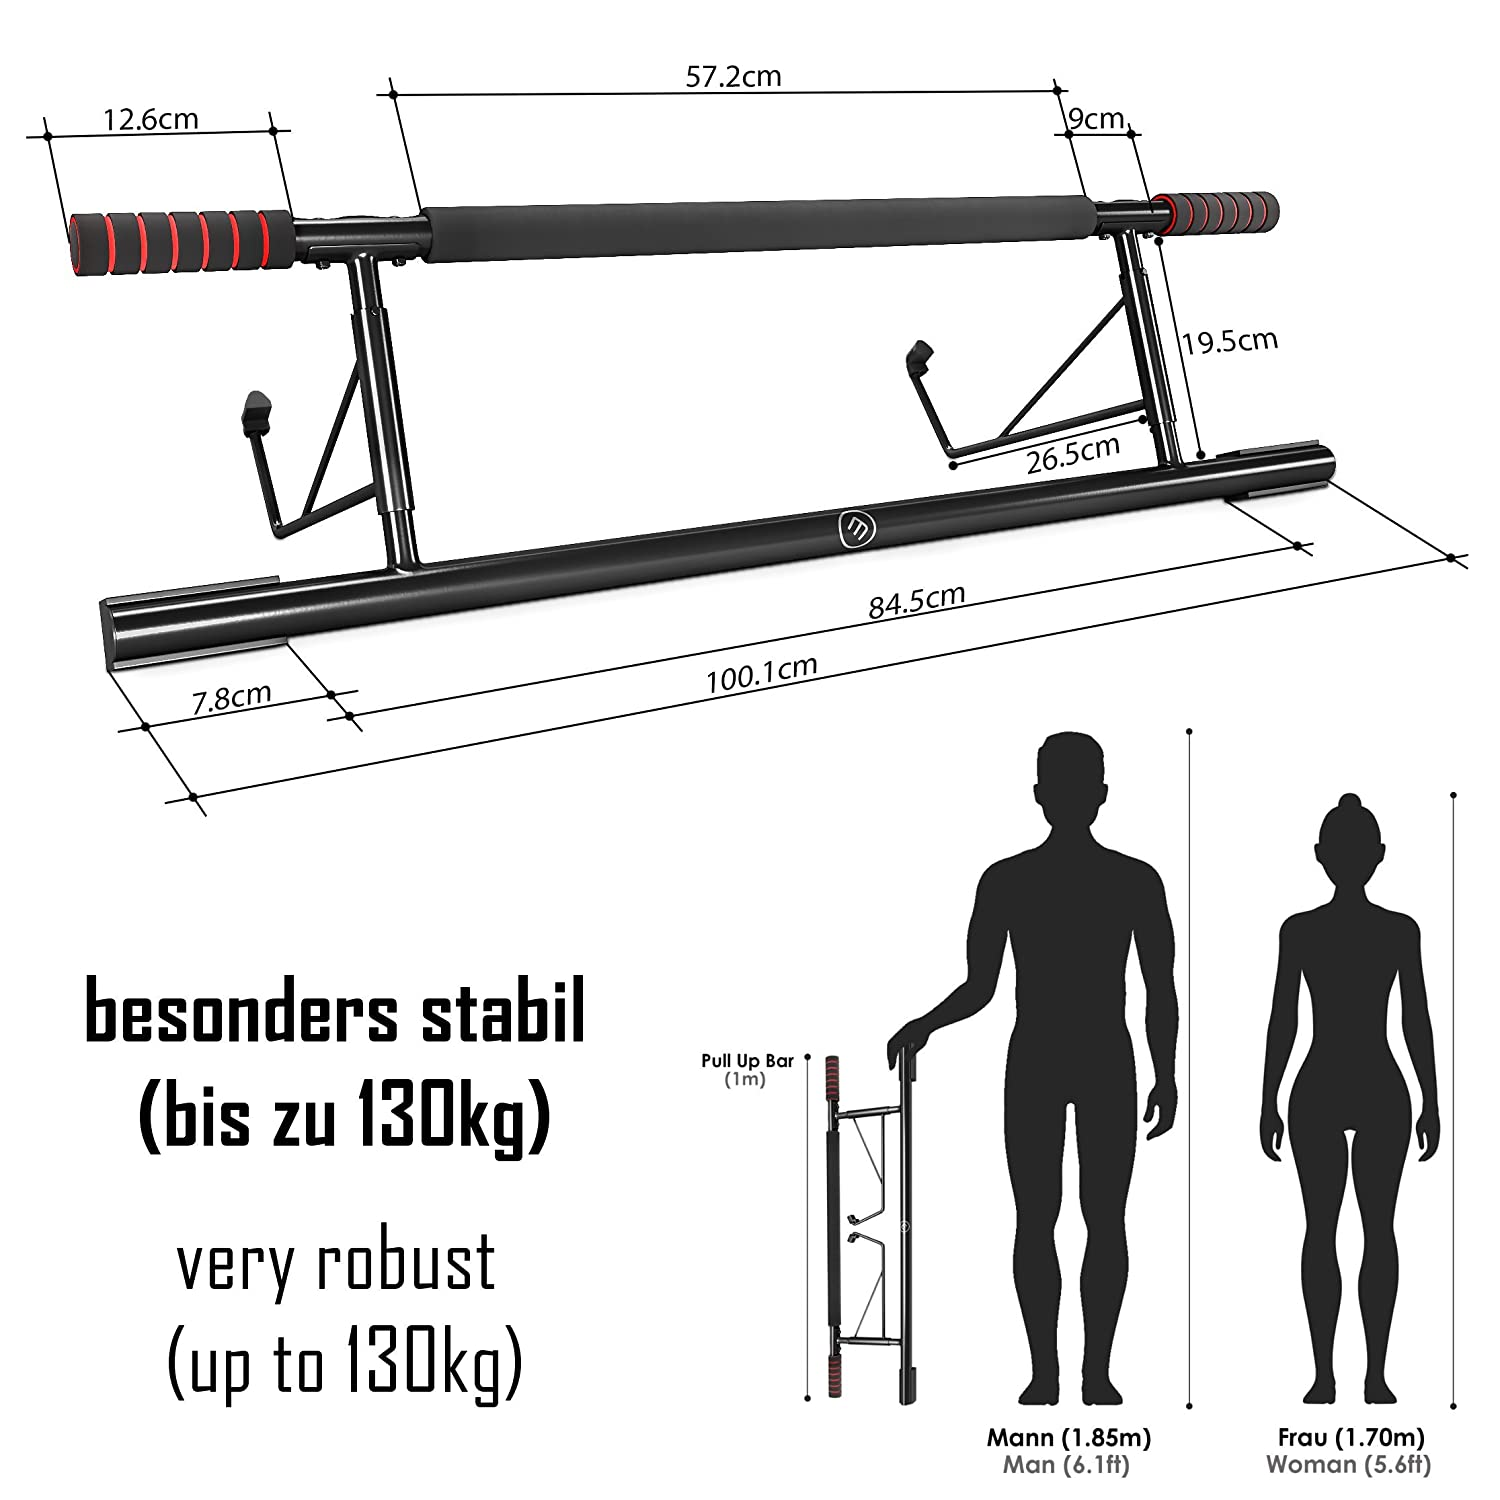 Mounting on Doors Indoor Workout Guide Pull-Up Bar for Door Frames without Screws // Drilling Extra Wide Workout Bar for Hanging in Doorway at Home Professional Chin-Up Bar with Padded Handles